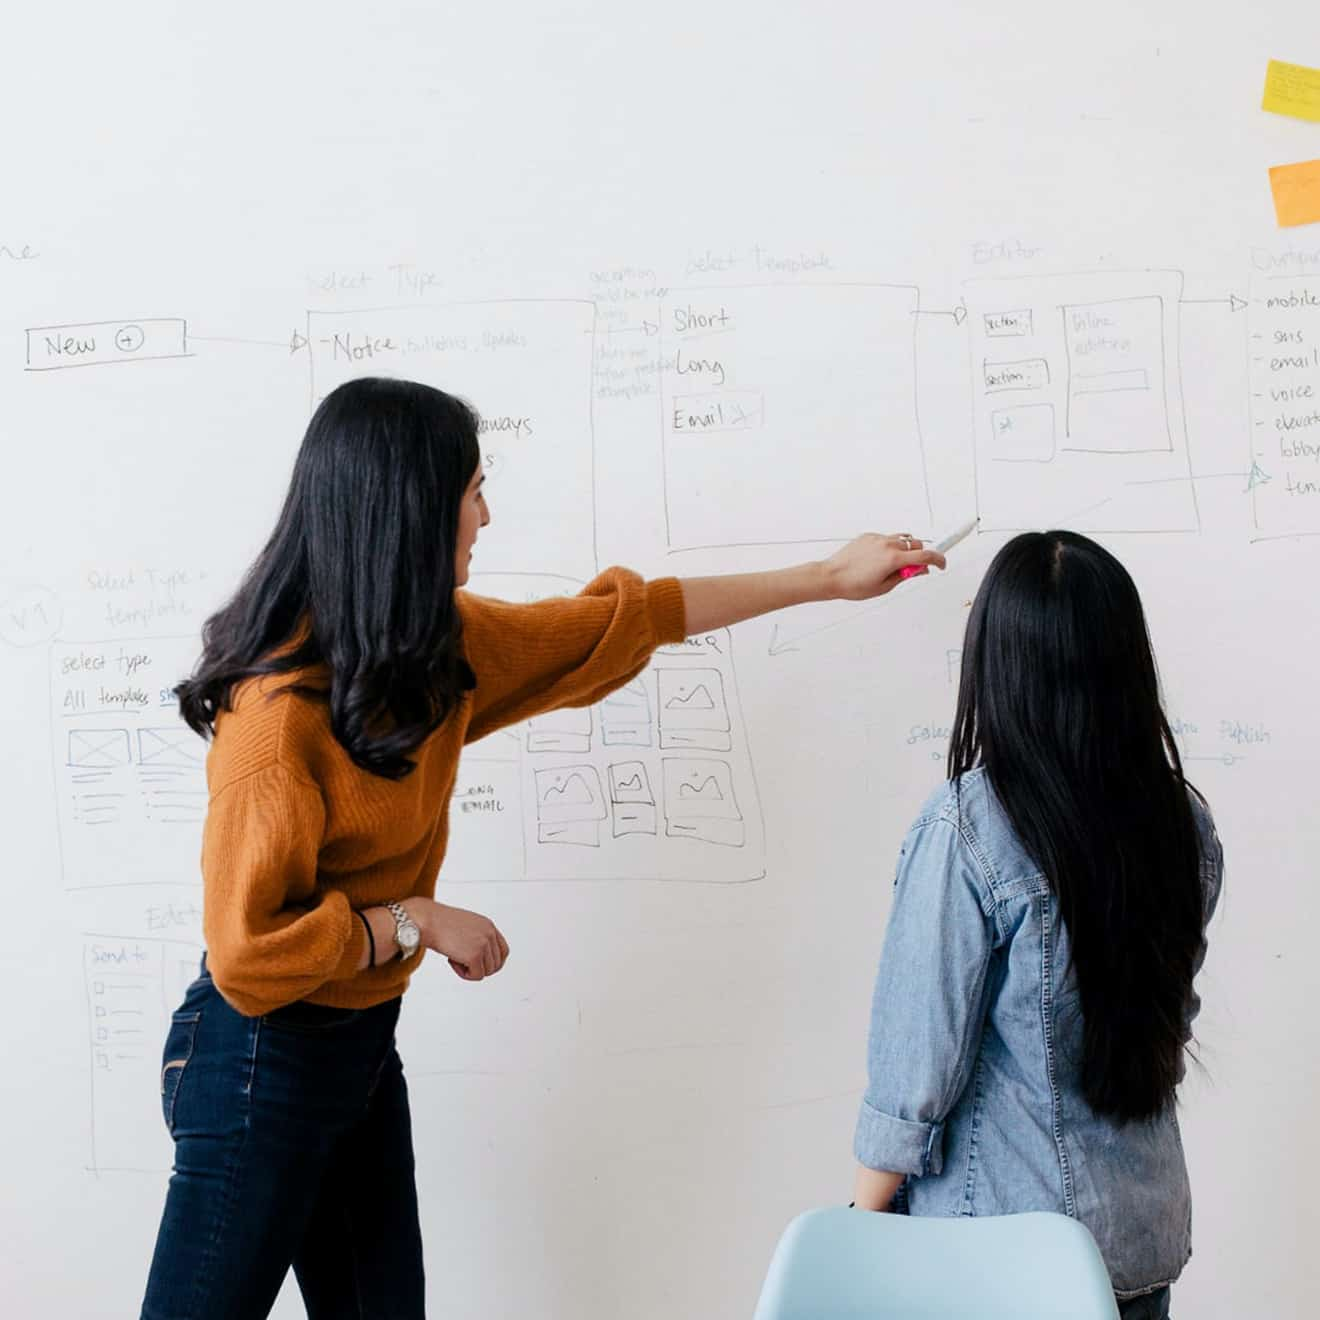 How to Provide Productive and Effective Feedback in the Workplace